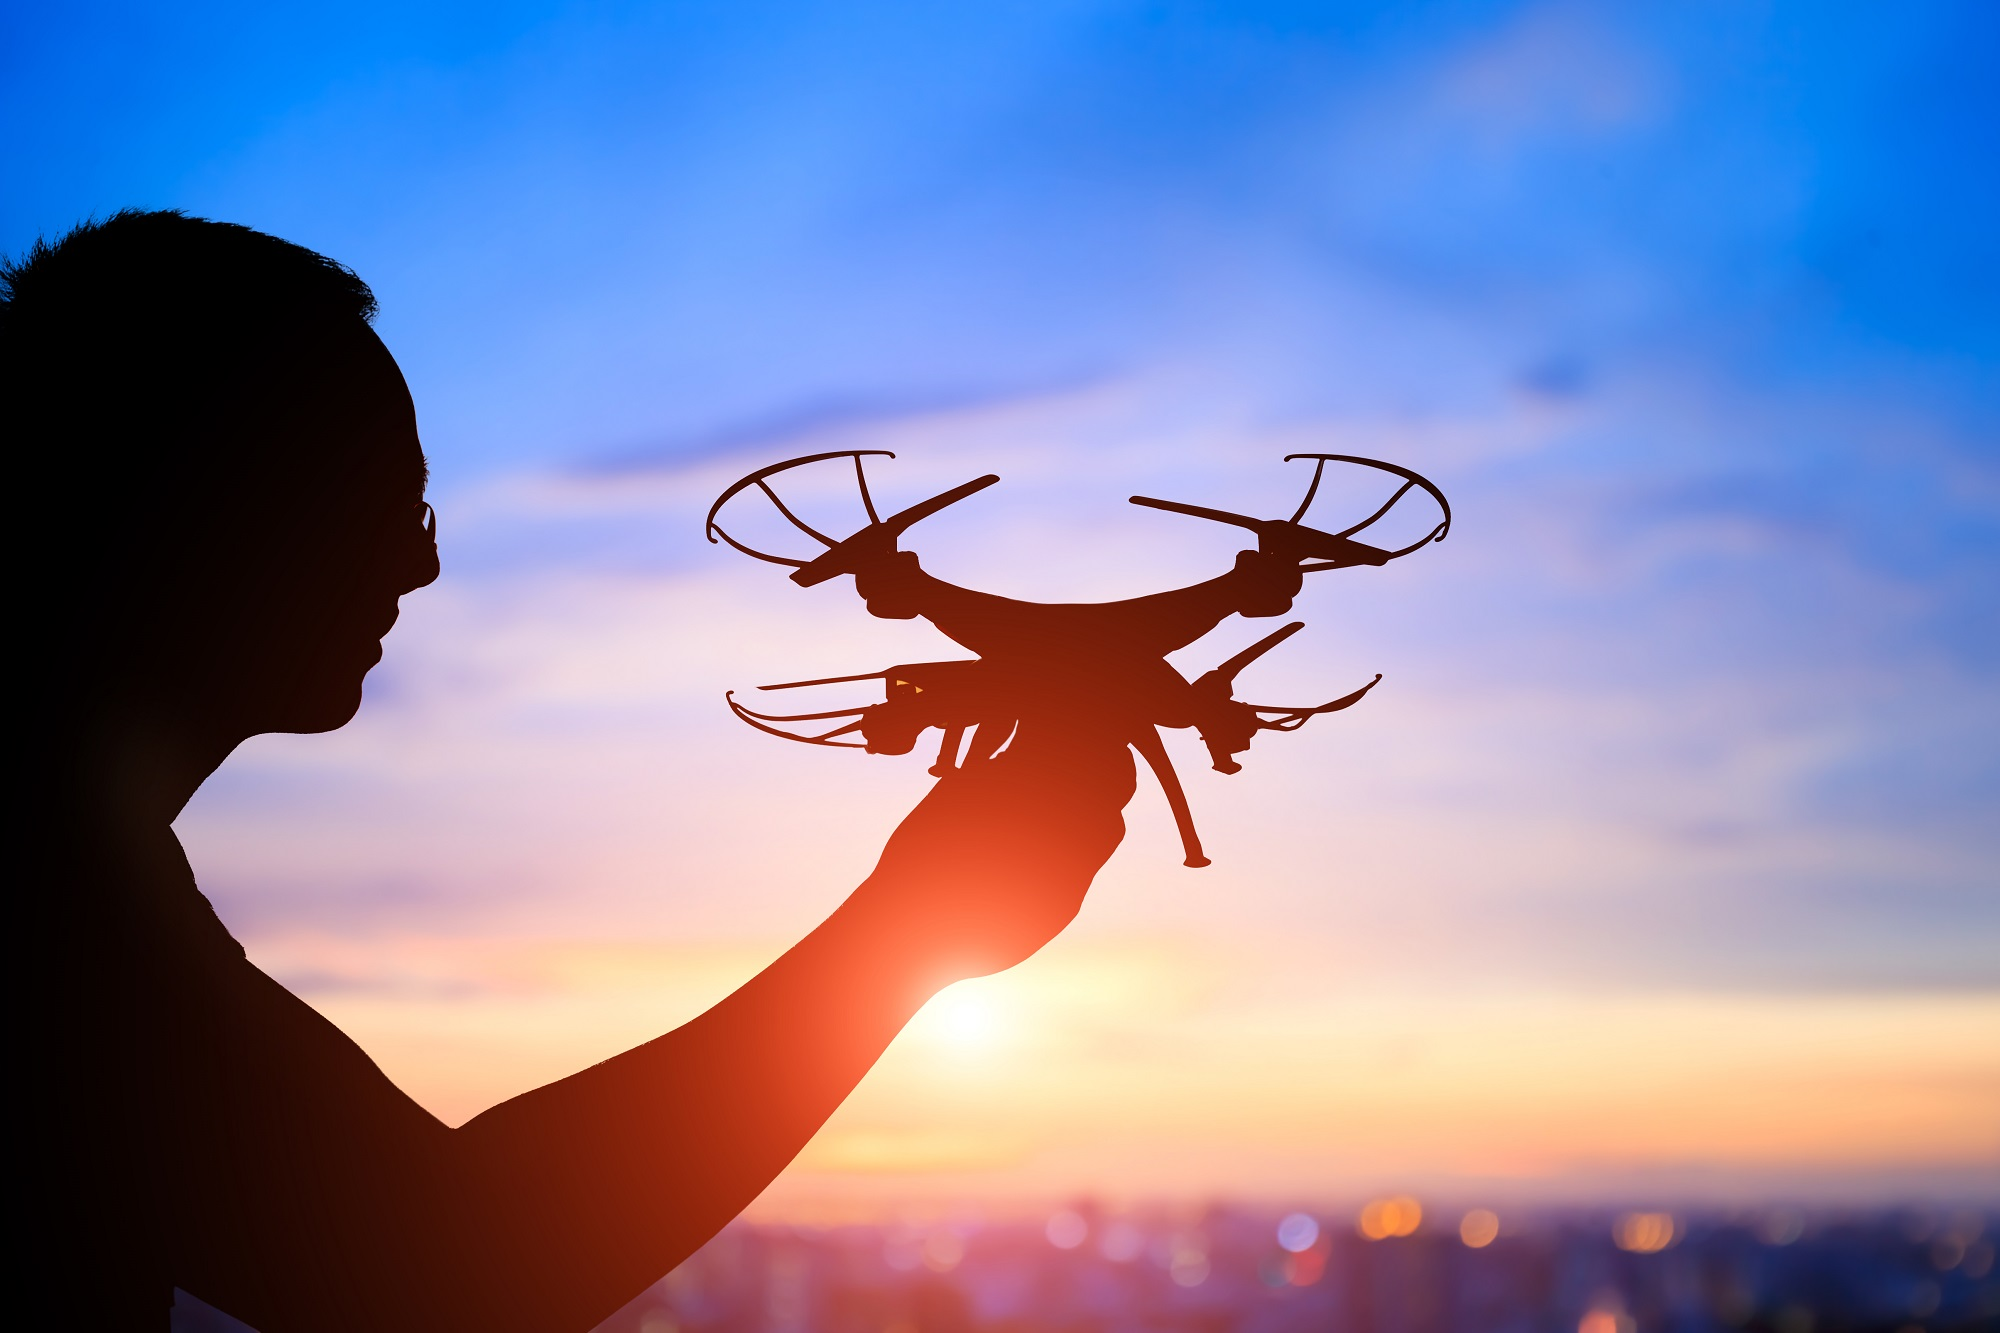 The new company, Korea Aviation Technologies, will develop drones with vertical takeoff and landing capabilities. (RyanKing999/Getty Images)